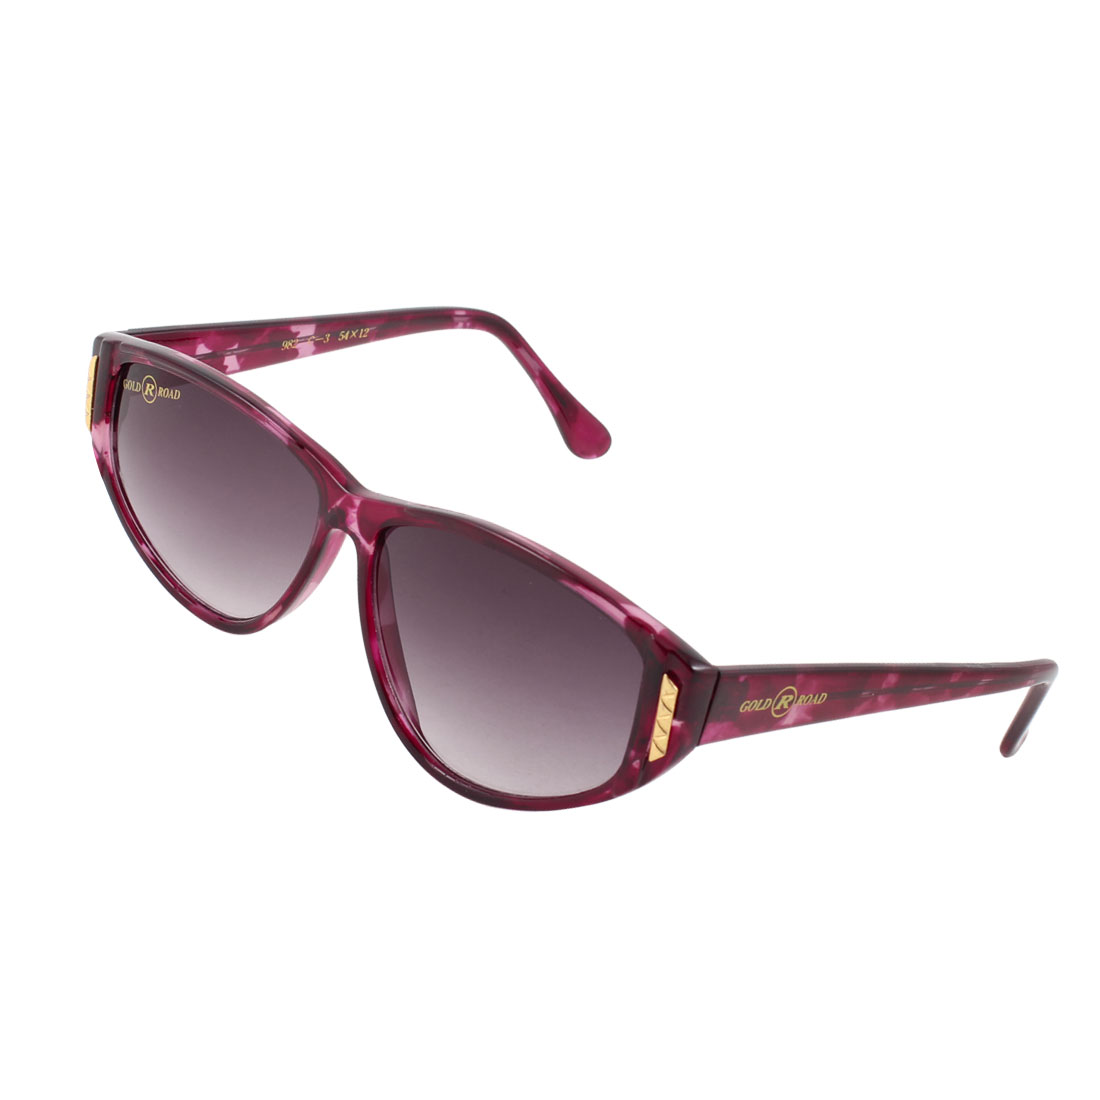 Lady Outdoor Dark Burgundy Arm Full Frame Tinted Lens Single Bridge Sunglasses